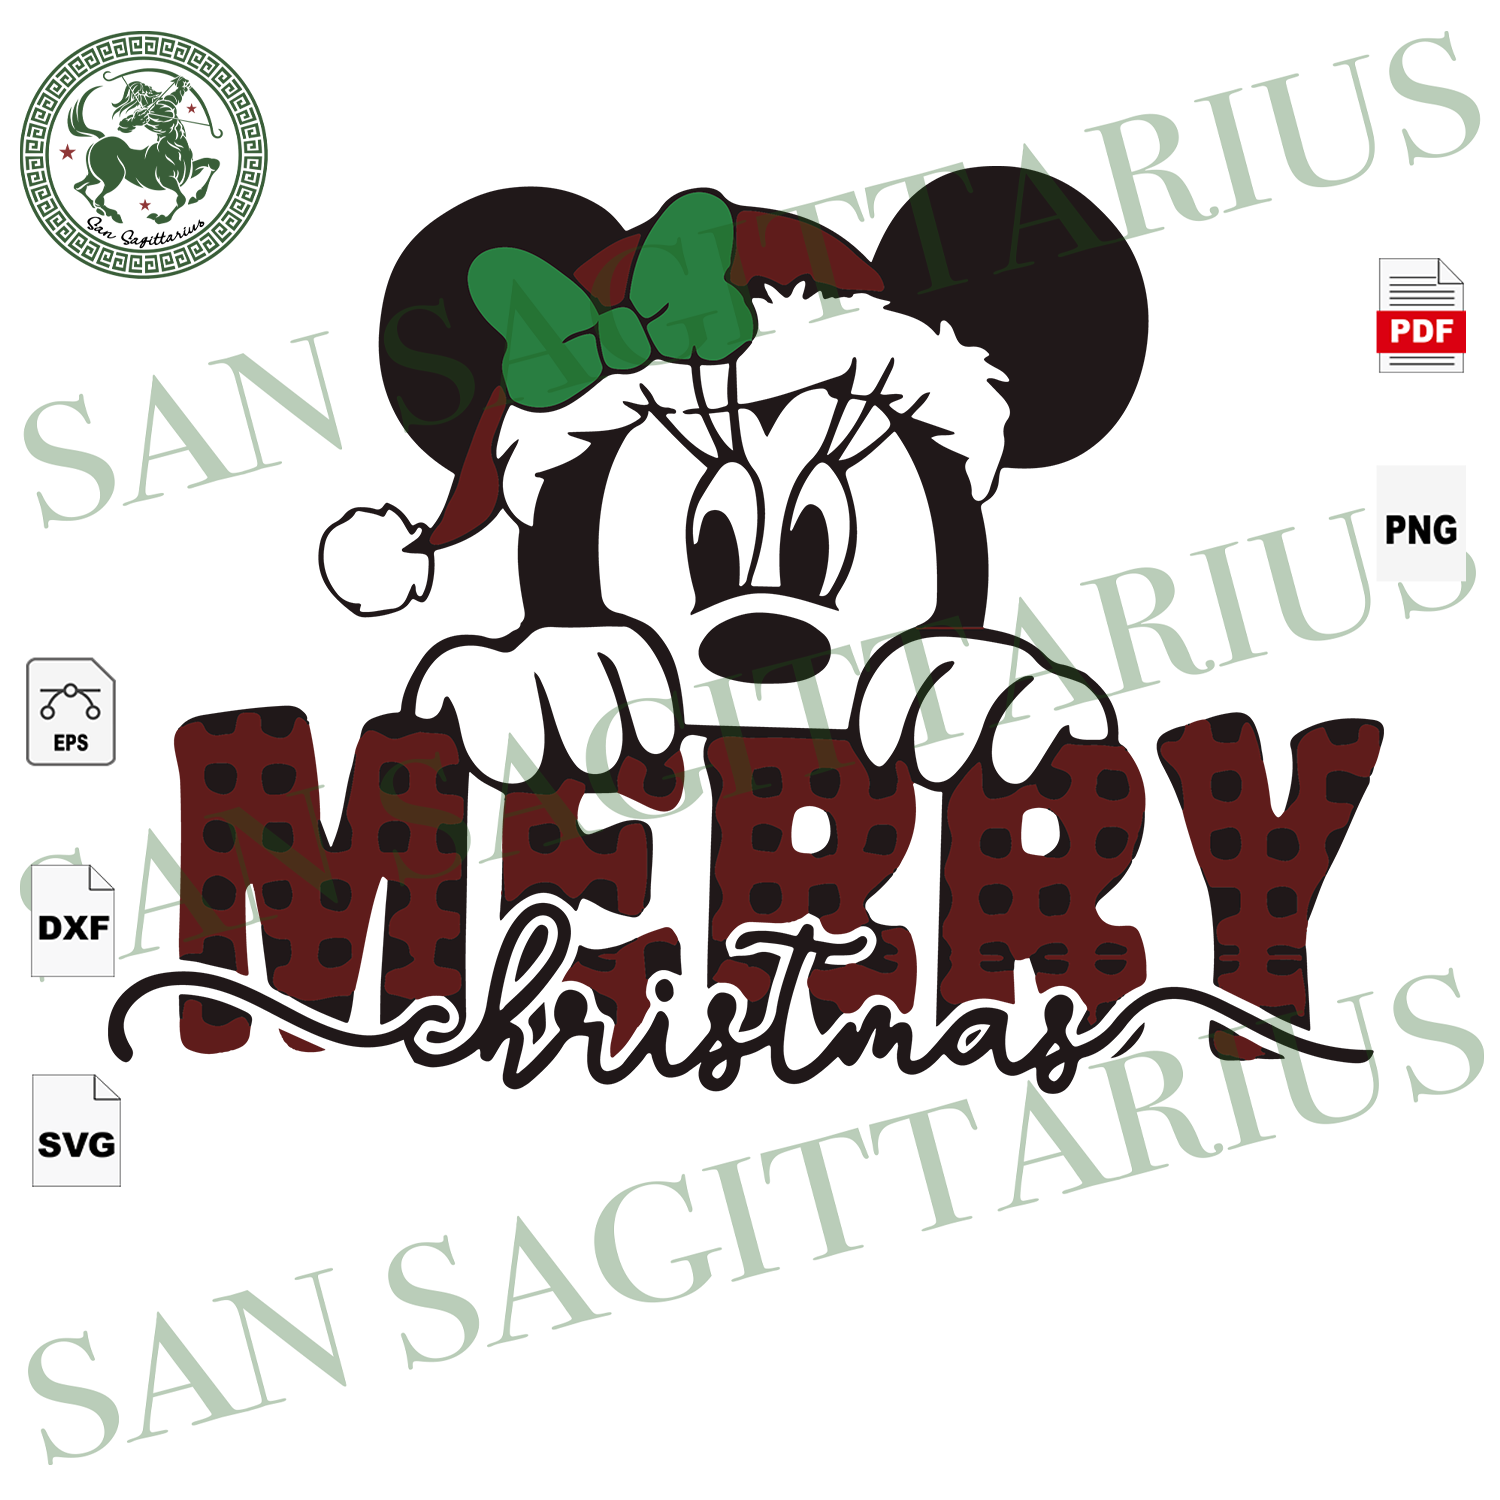 Merry Christmas Mickey, Mickey Svg, Christmas Svg, Mickey Shirts, Mickey Lover, Cute Mickey, Christmas Gifts, Merry Christmas, Christmas Holiday, Christmas Party, Funny Christmas, Disney, Dis